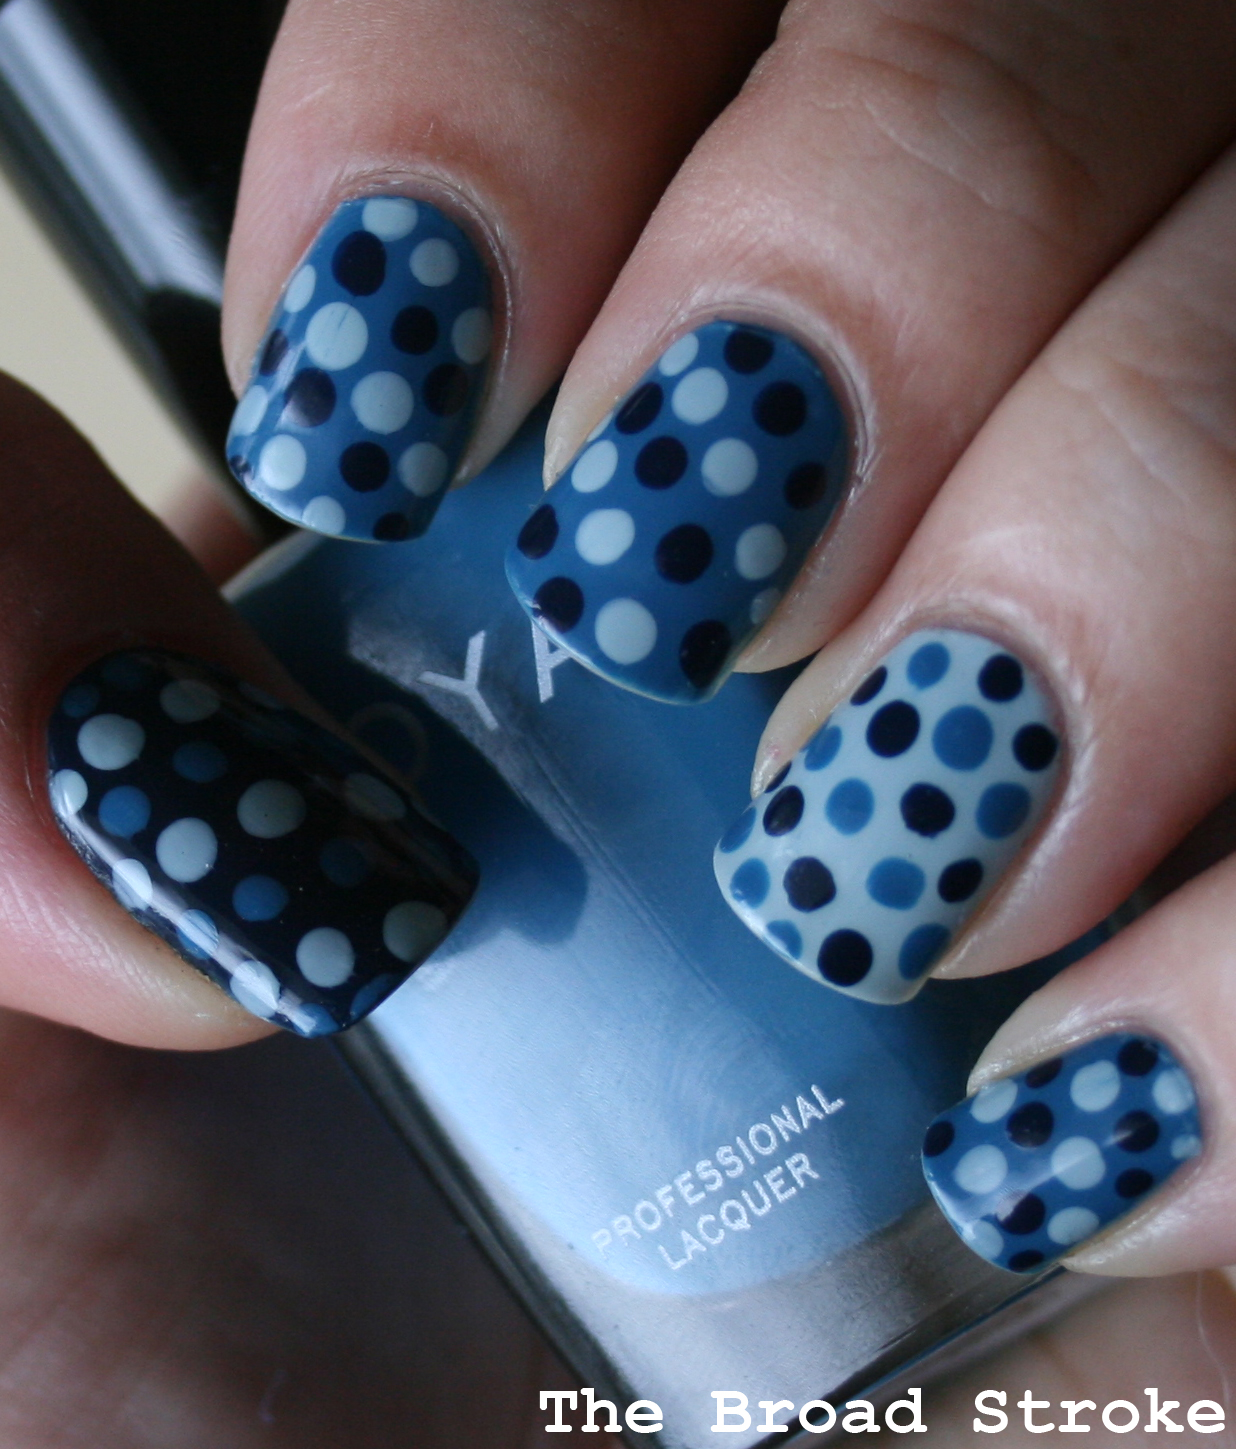 The Broad Stroke: Blue Polka Dots